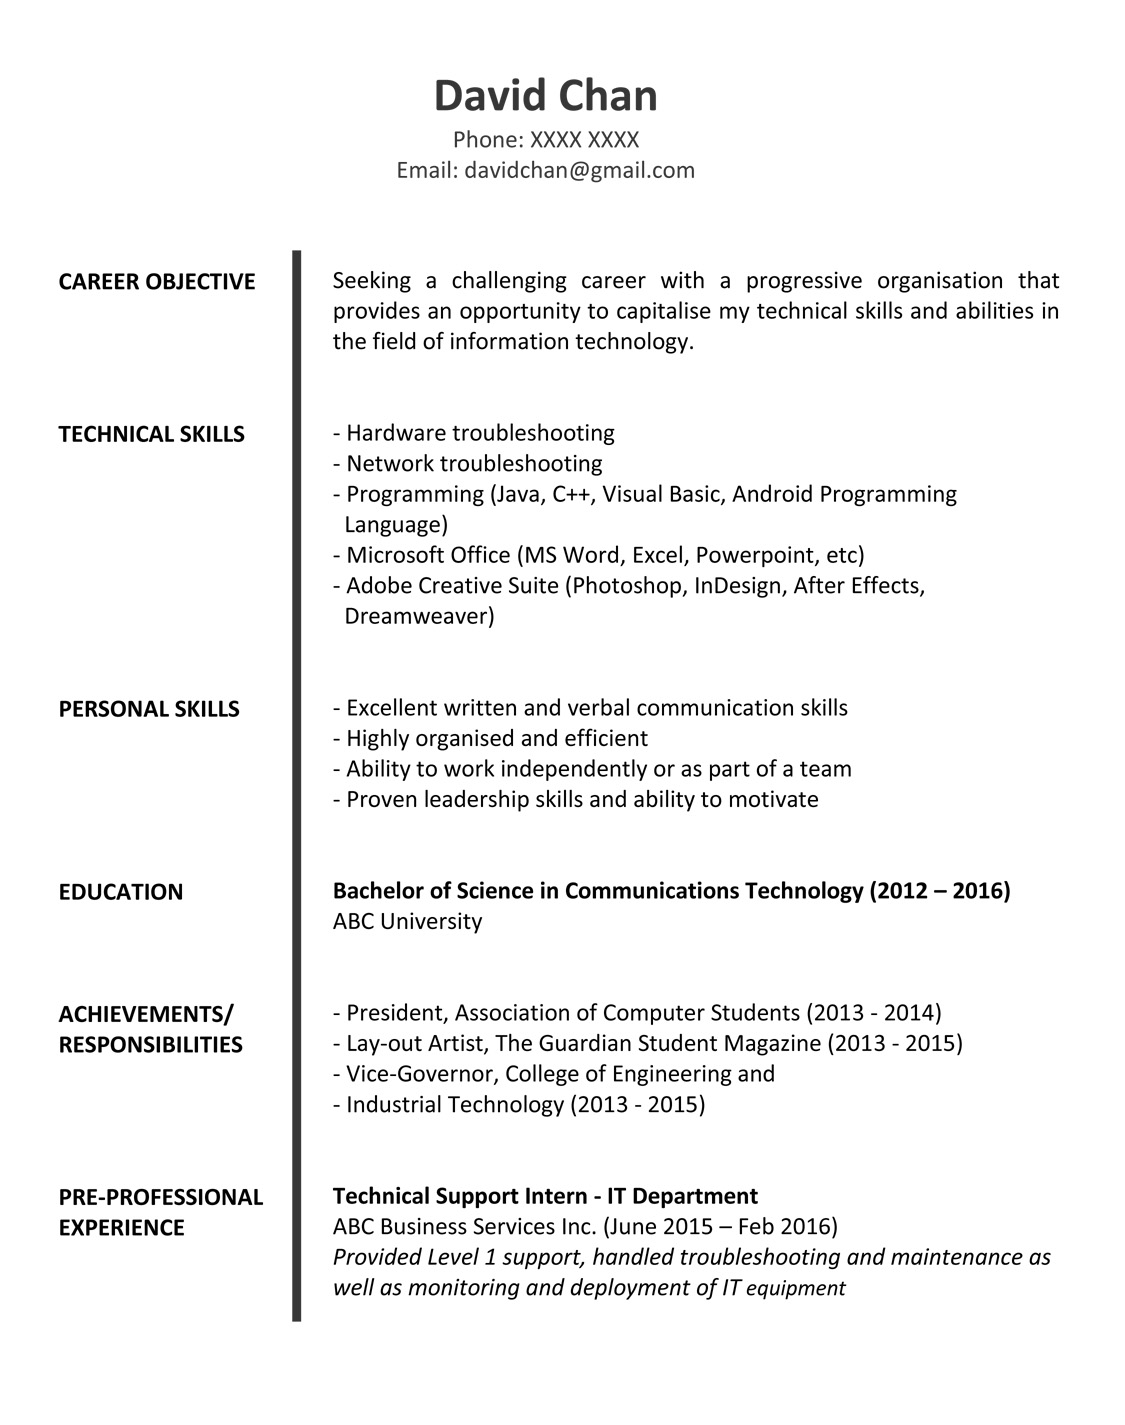 resume objective sample for fresh graduate computer science fg 1p outreach booklet Resume Sample Resume For Computer Science Fresh Graduate